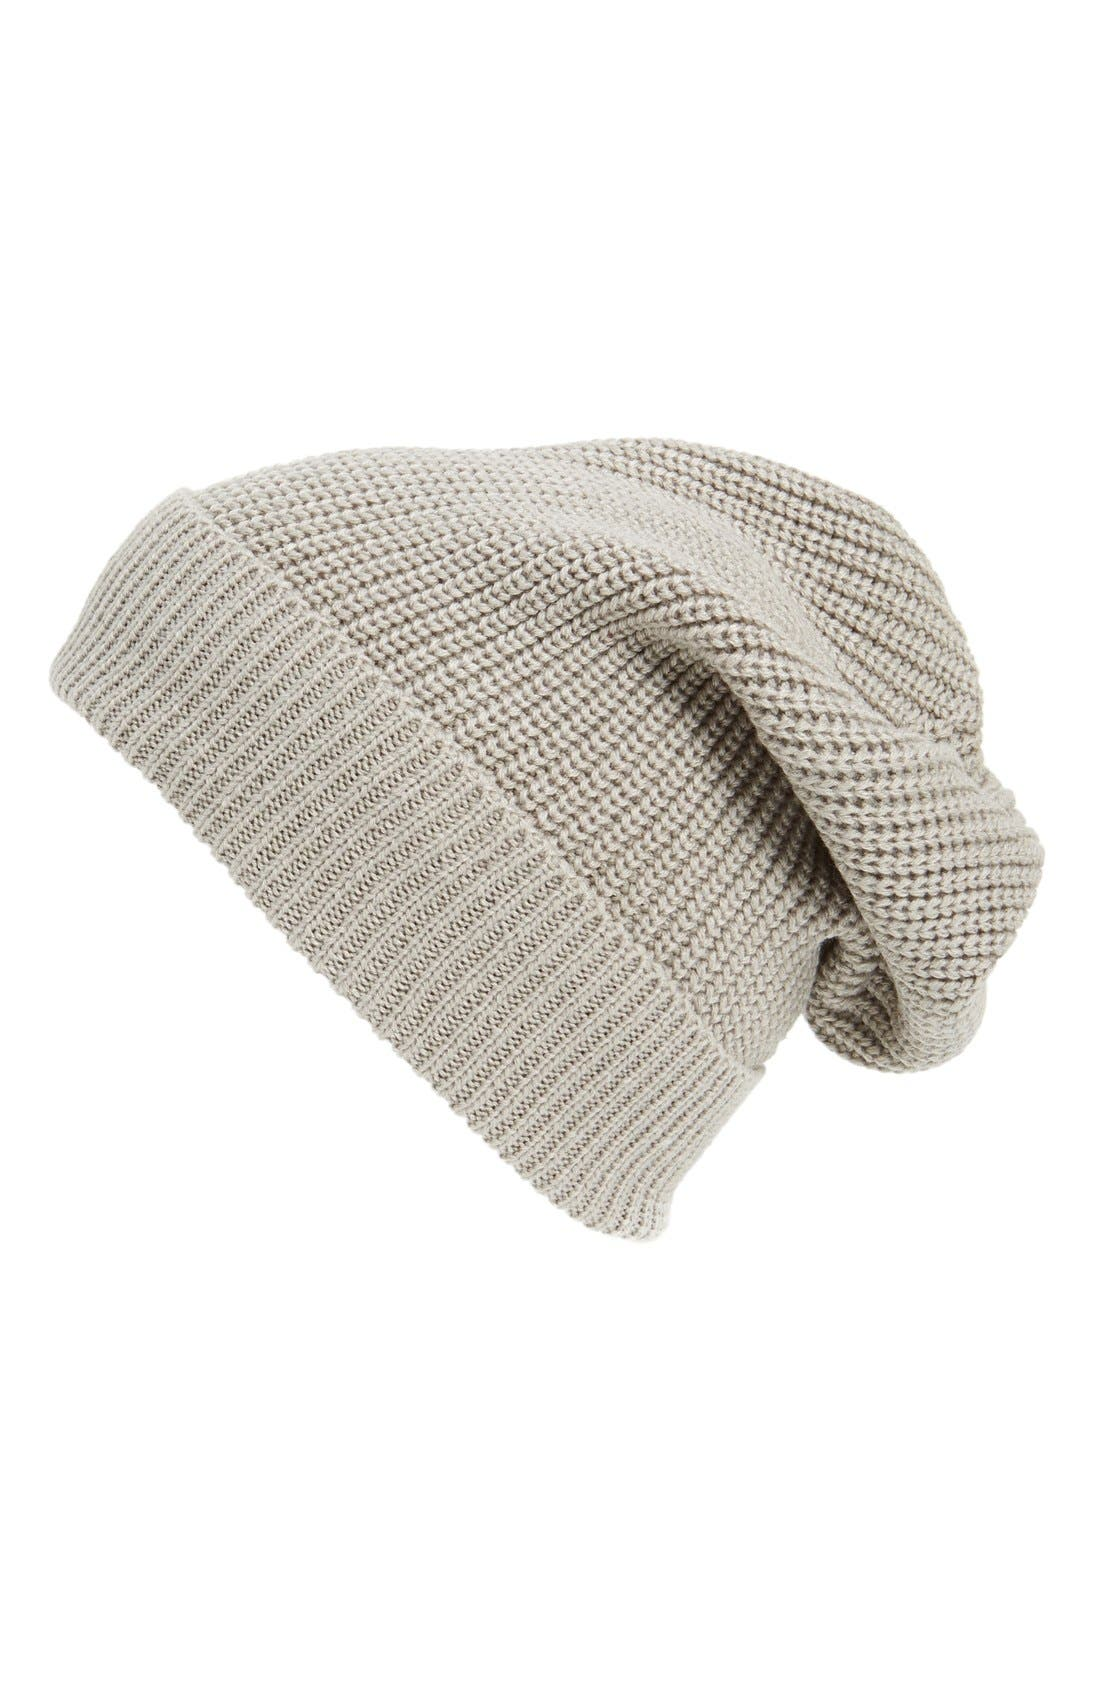 Alternate Image 1 Selected - Phase 3 'Stand Up' Basket Knit Slouchy Beanie